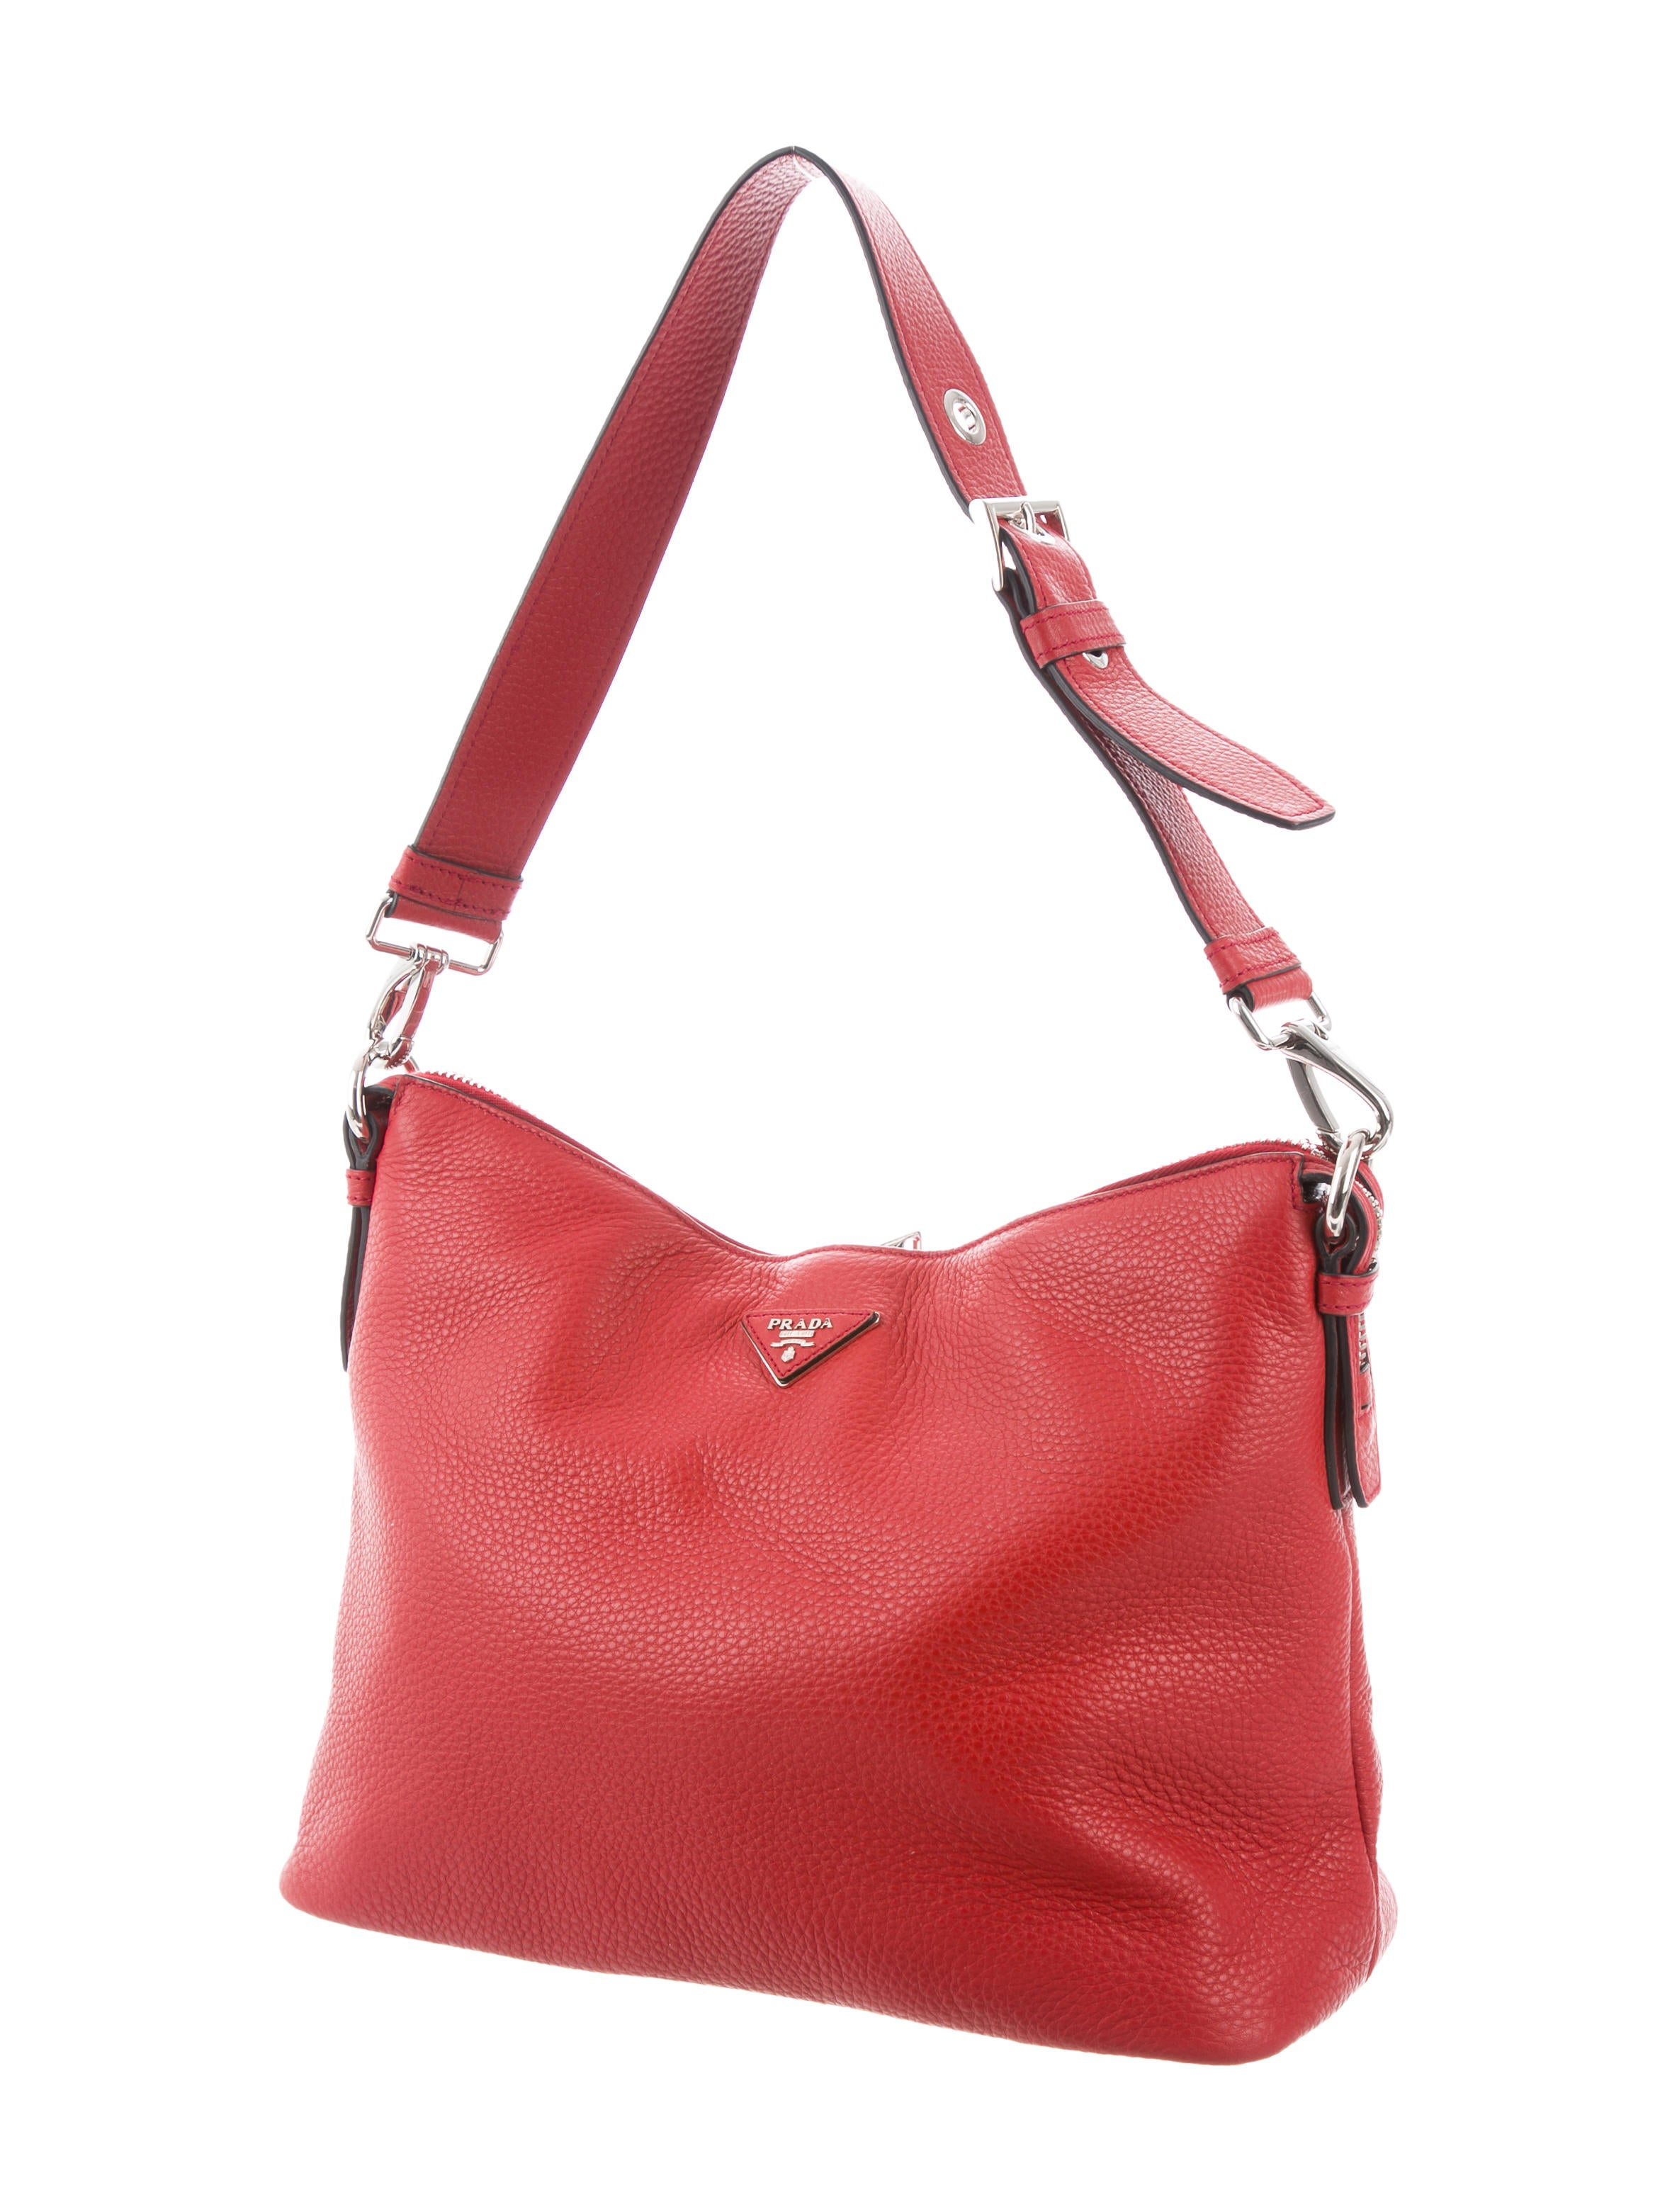 5c79bc6a50e3 Prada Vitello Daino Hobo - Handbags - PRA188975